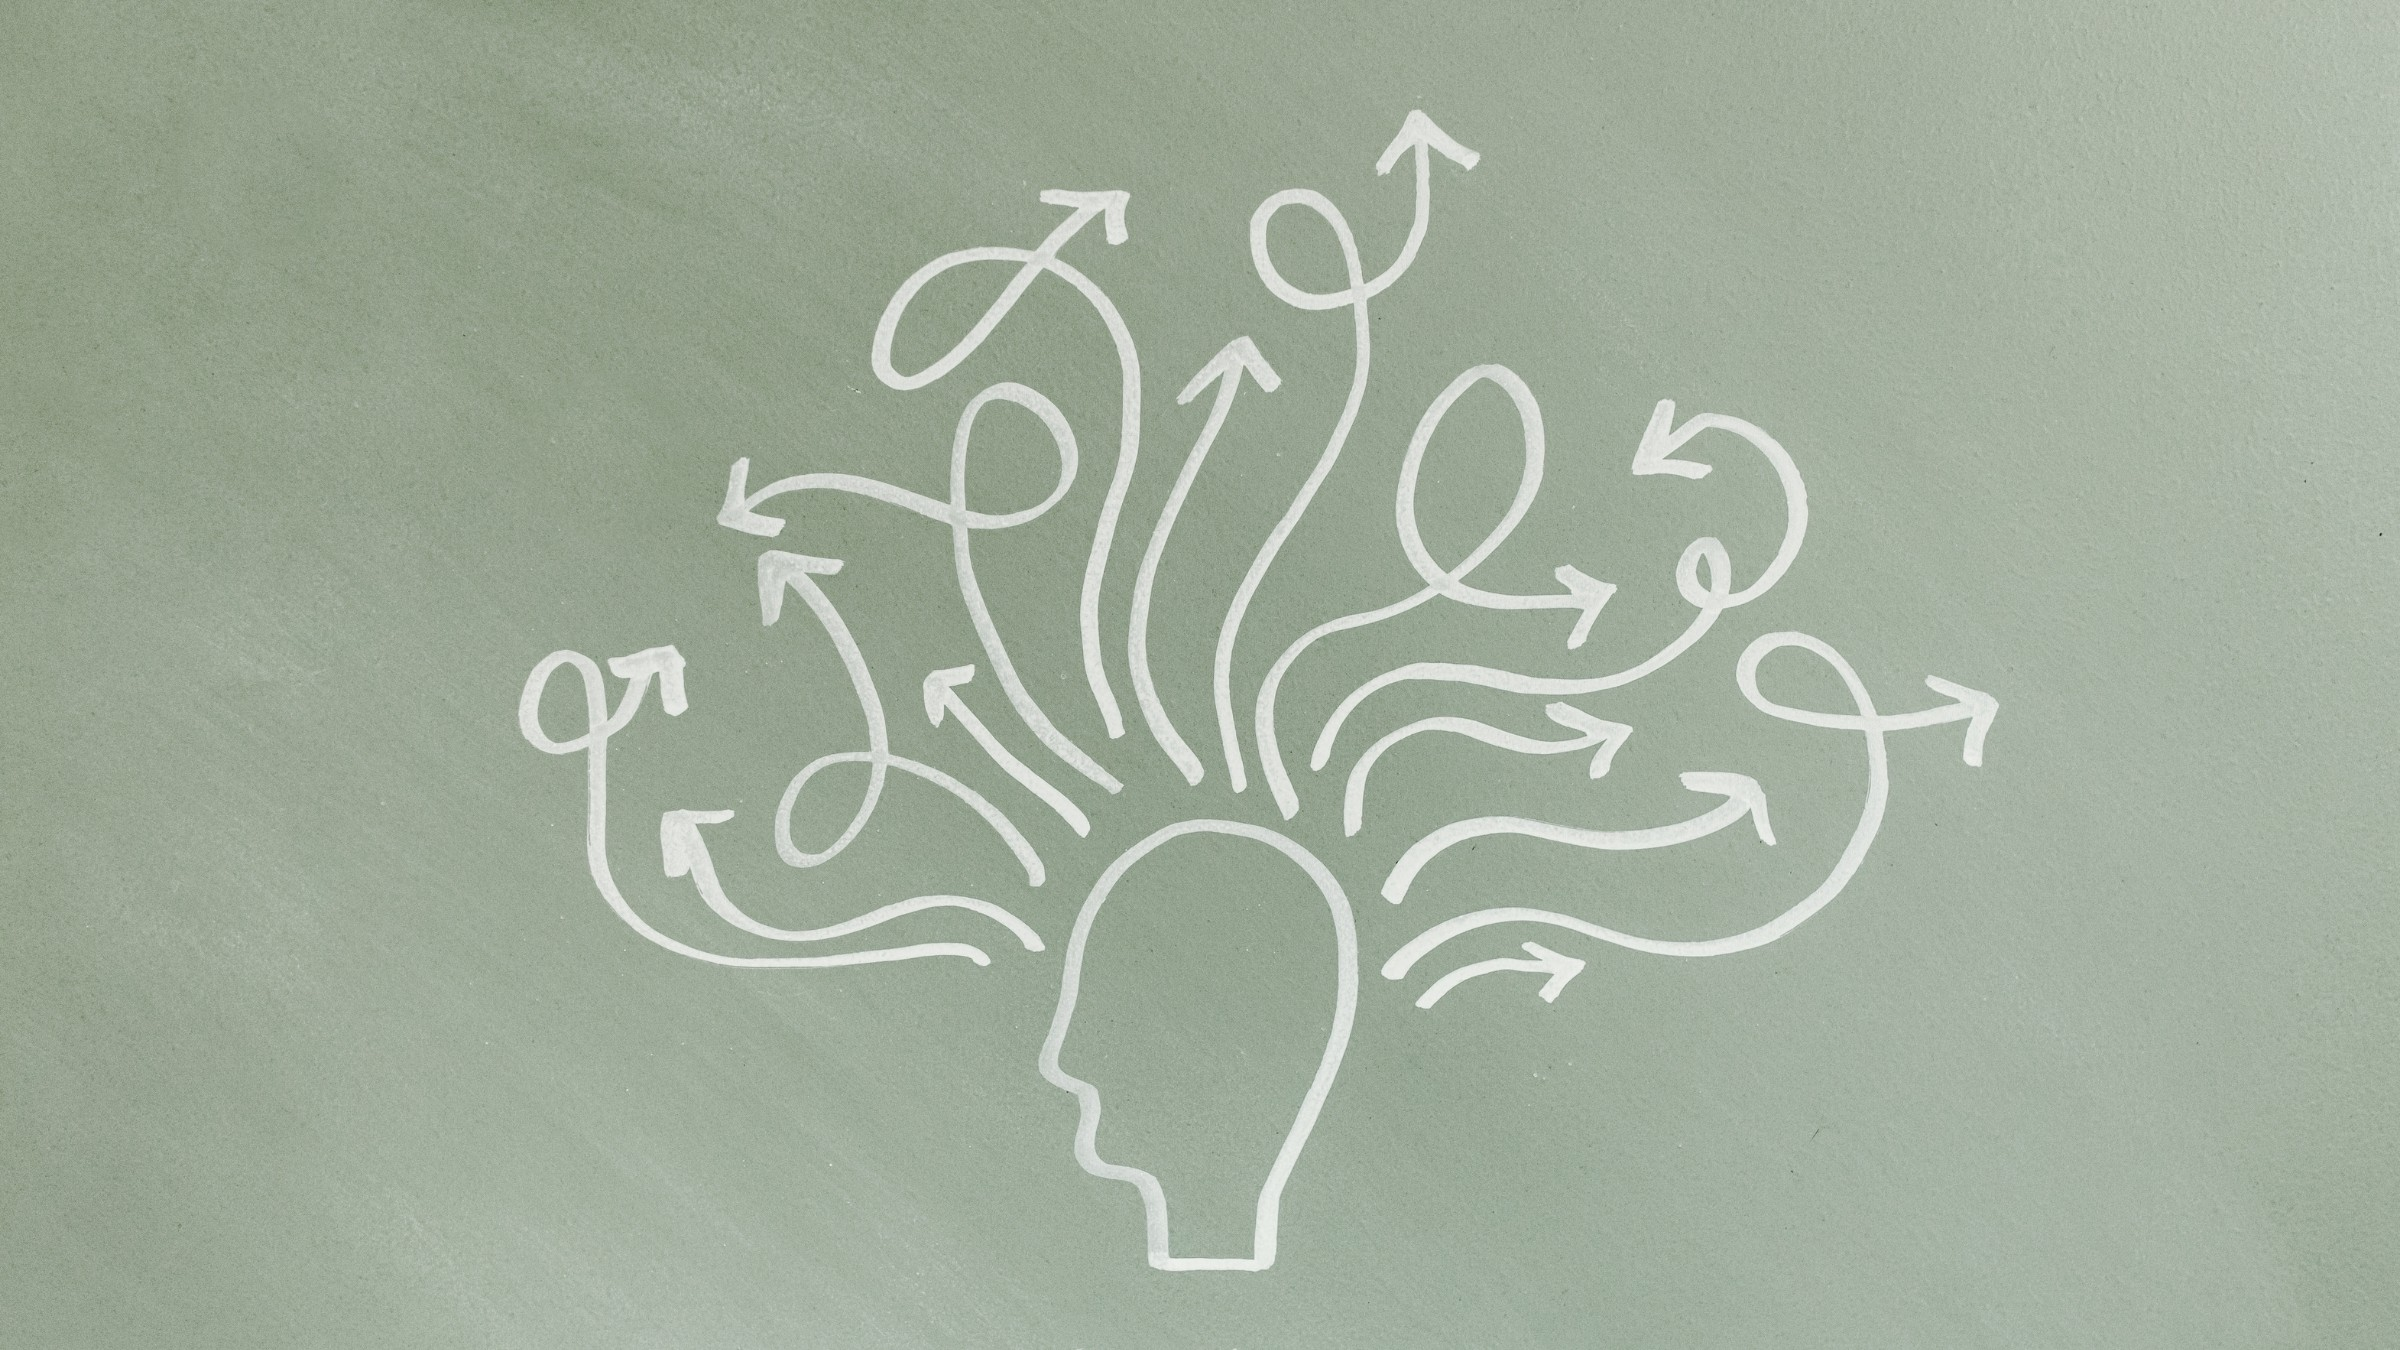 Chalk illustration of a person with swirling thoughts.